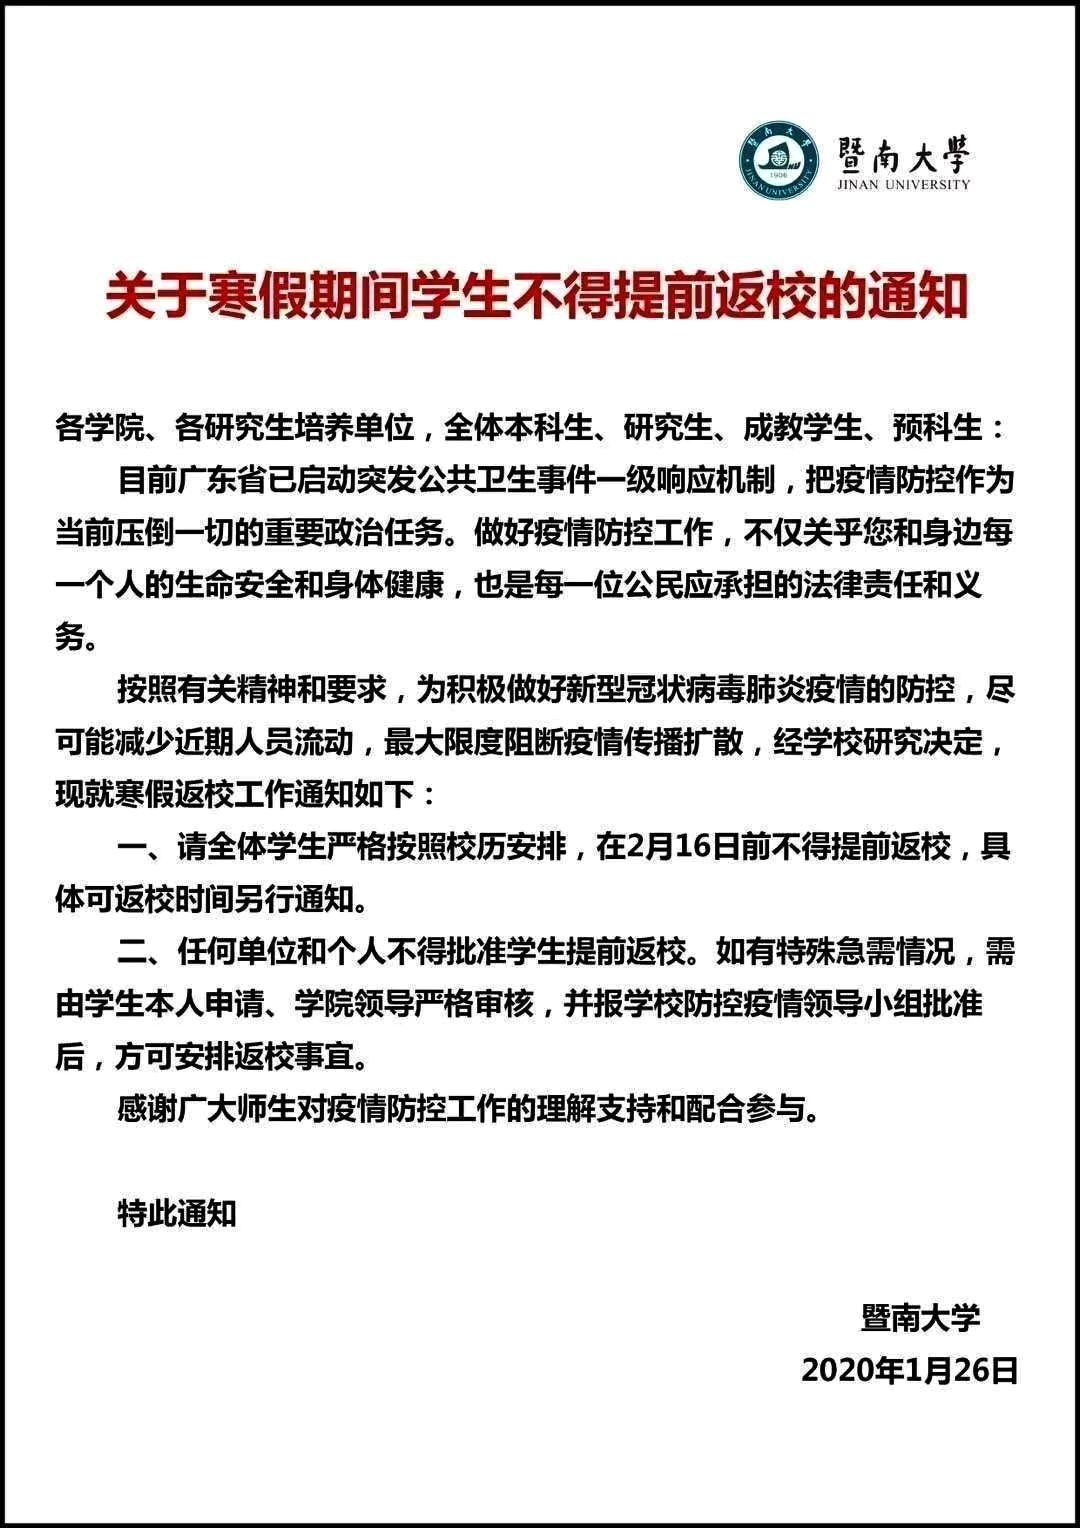 Student Notice from Jinan University